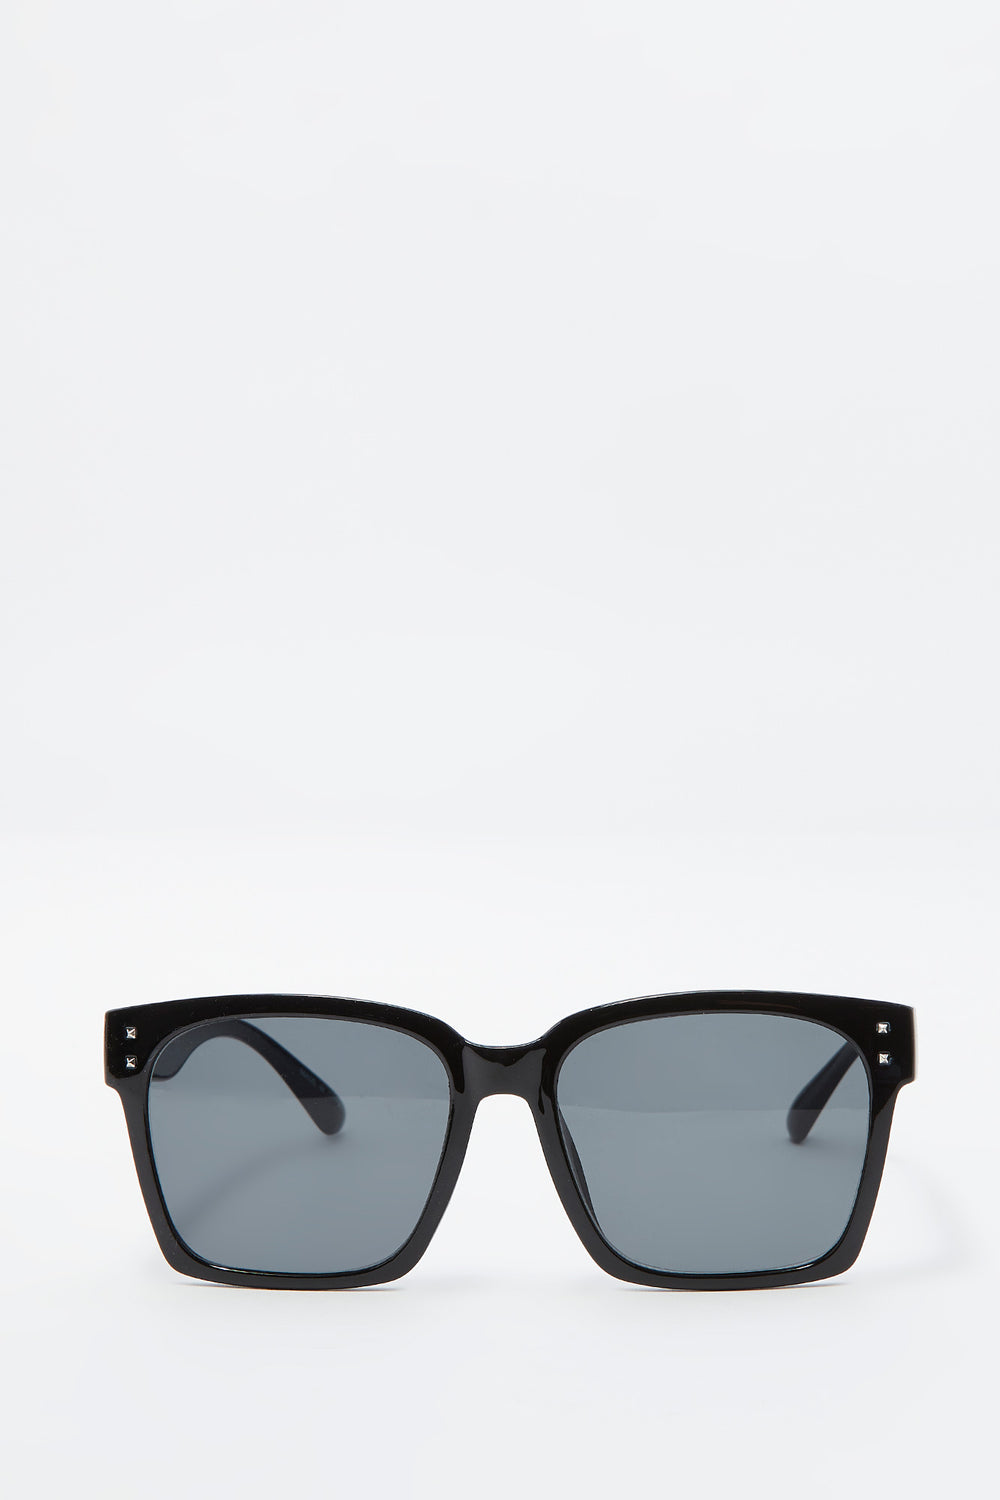 Oversized Square Frame Sunglasses Black